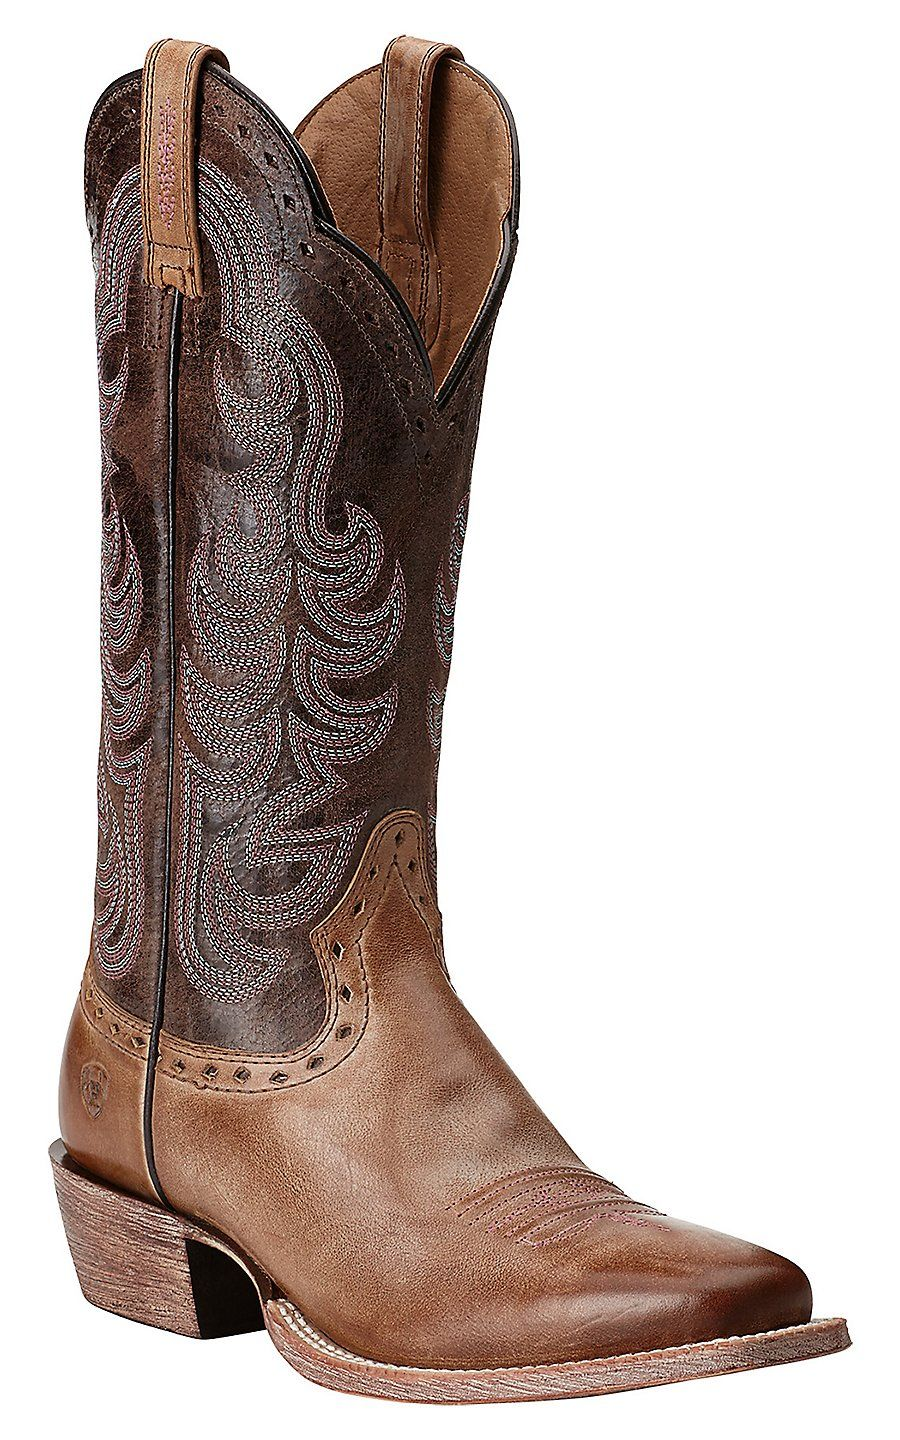 3d32e94be9cd Ariat Women s Good Times Gunsmoke with Matte Chocolate Square Toe Western  Boots